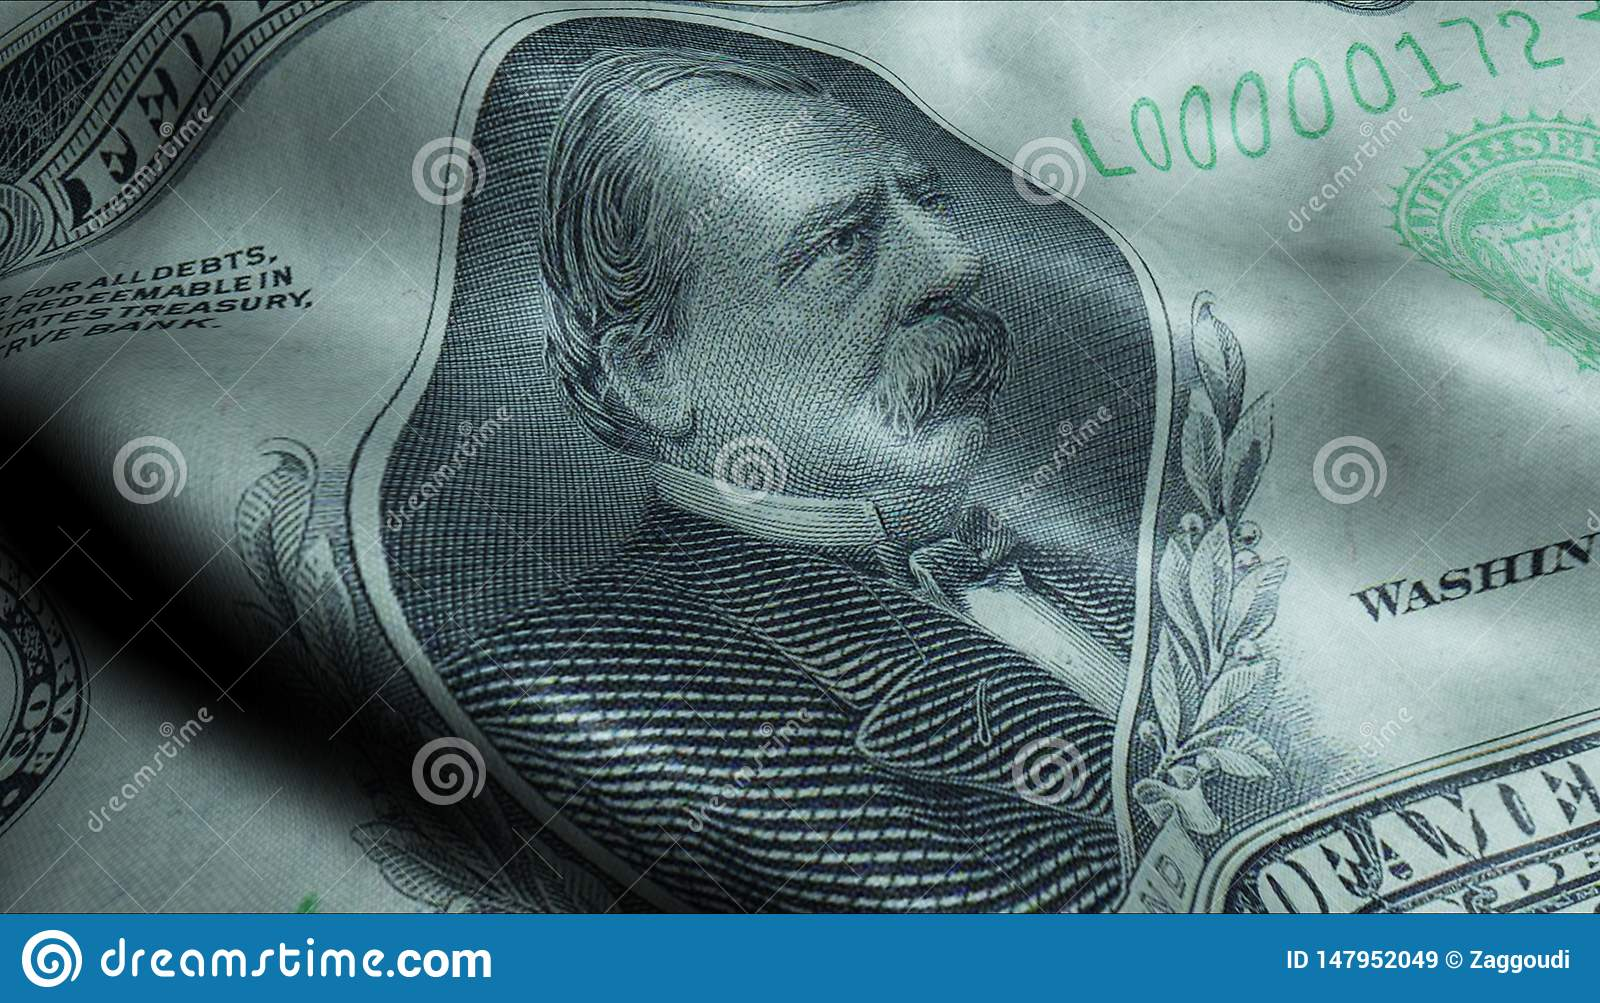 Us President Grover Cleveland Crumpled One Thousand Dollar